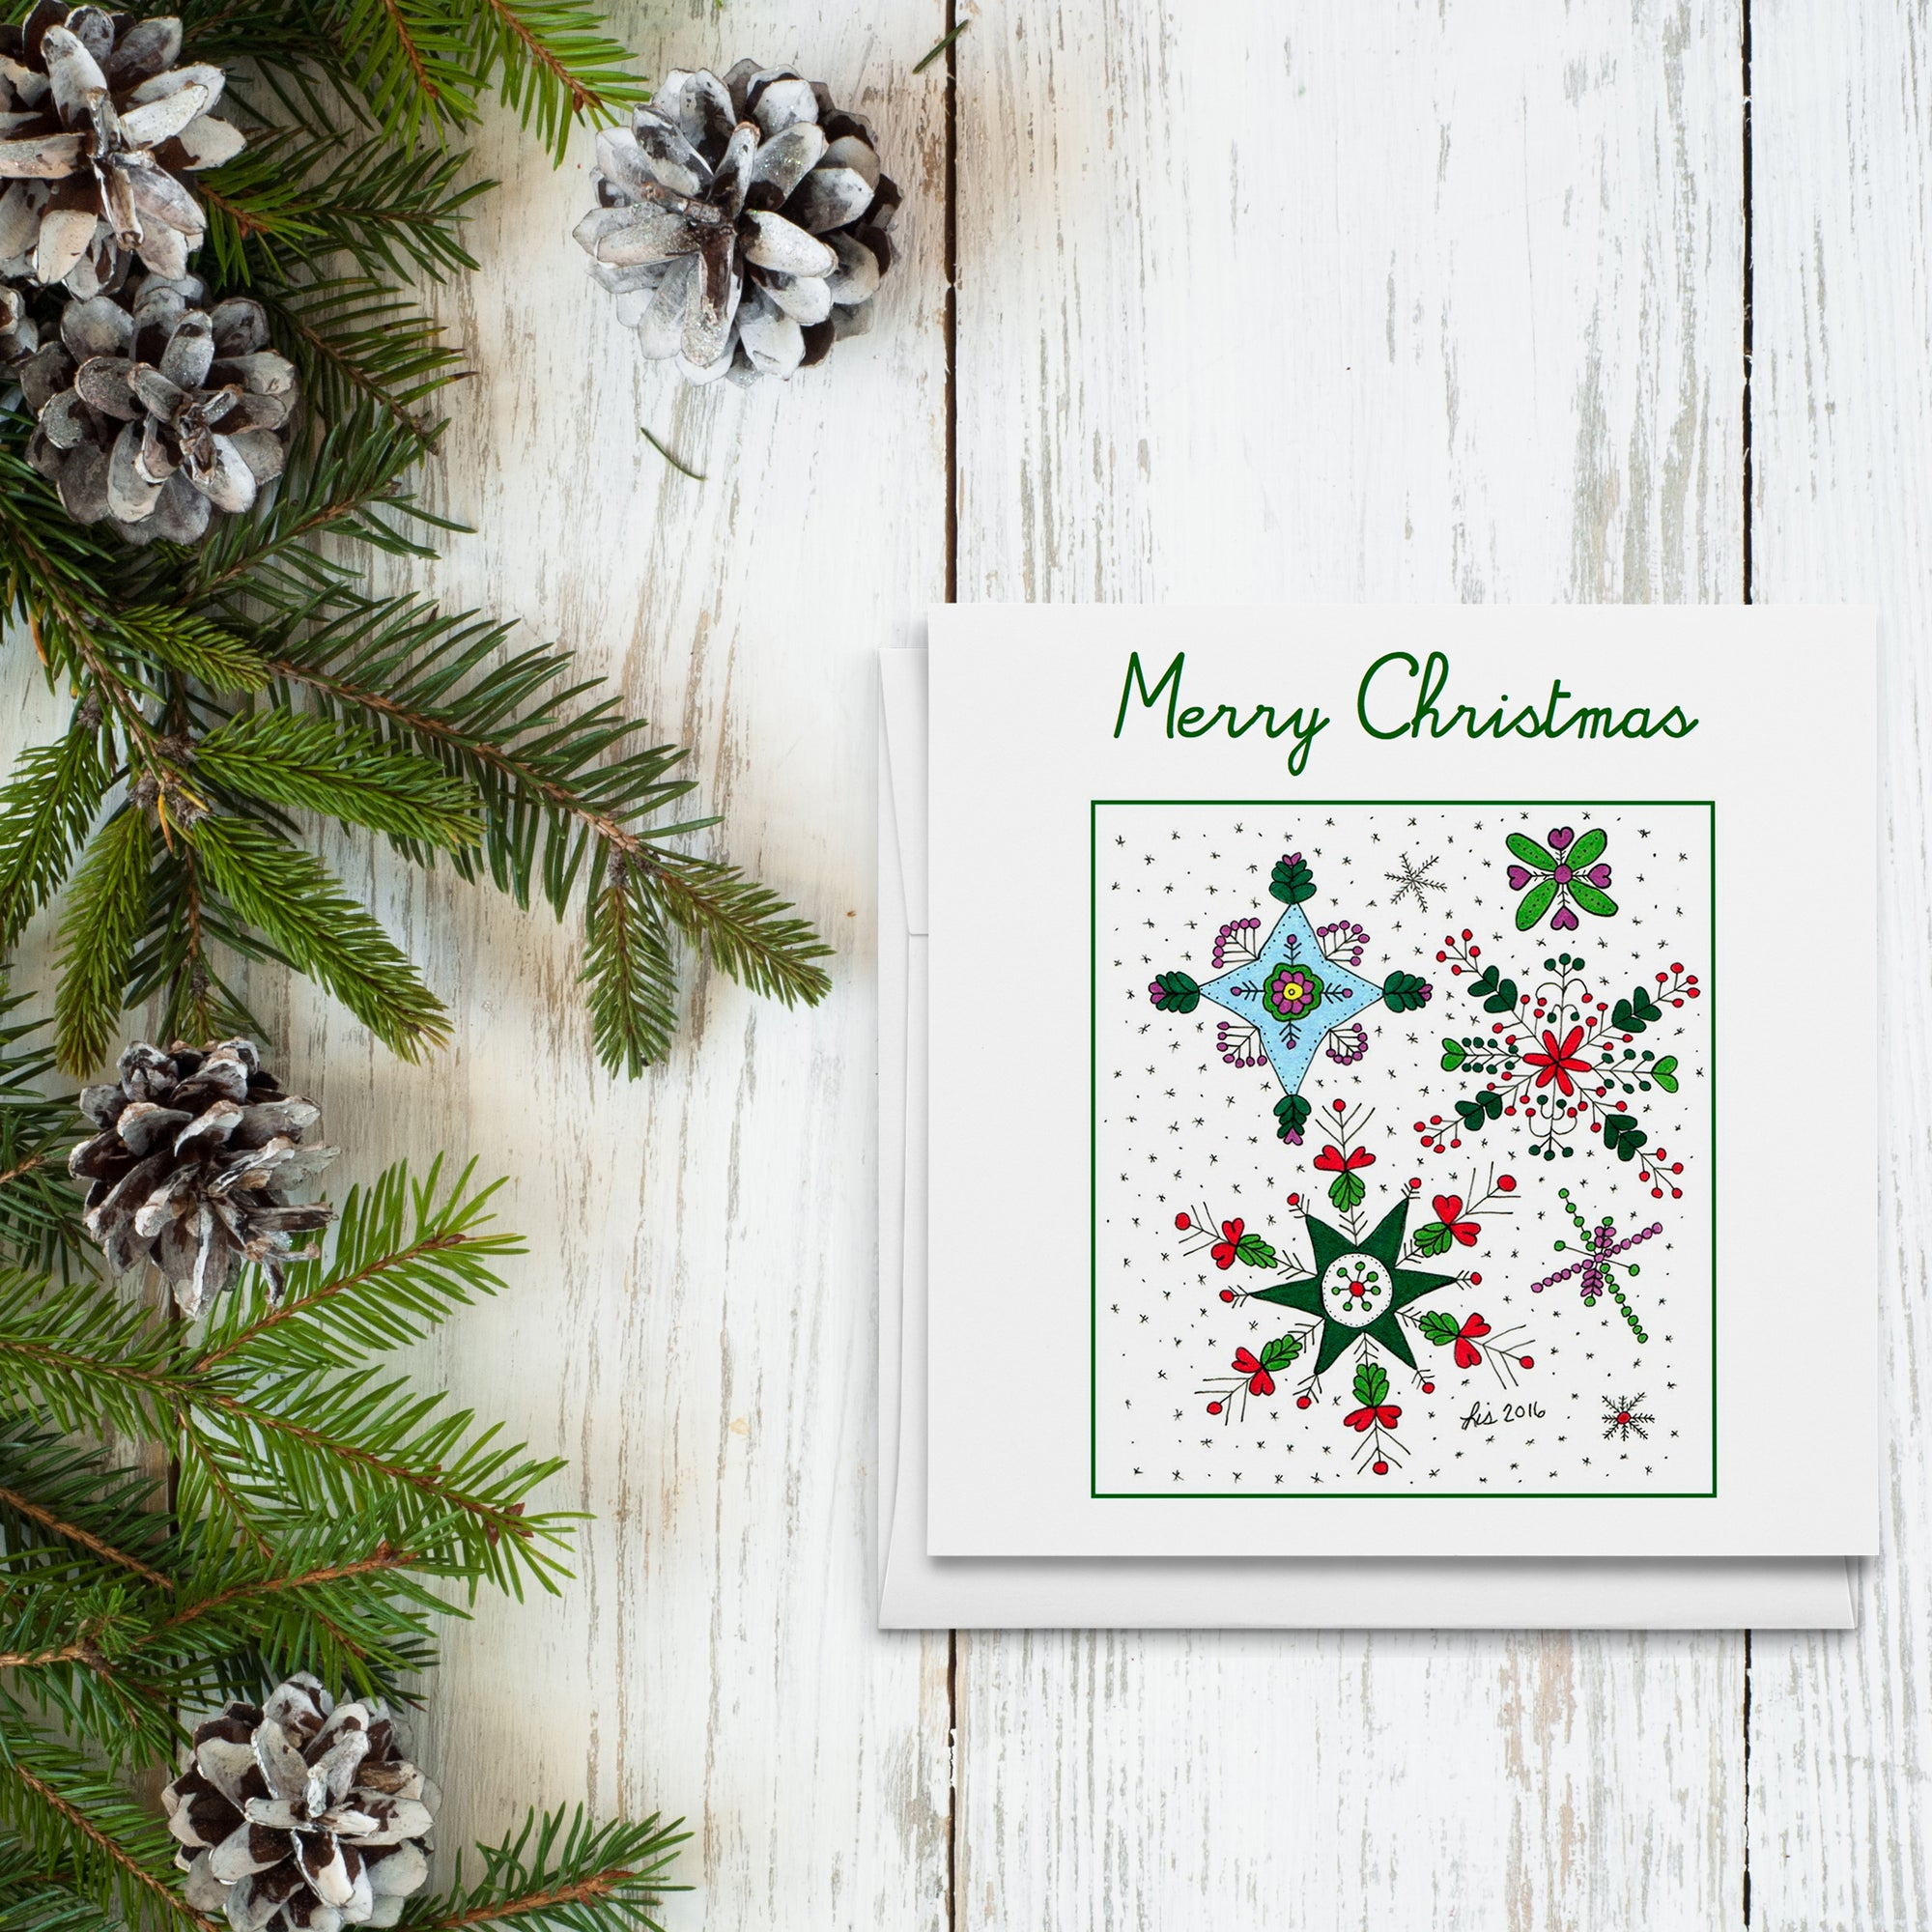 Merry Christmas Snowflakes Greeting Cards